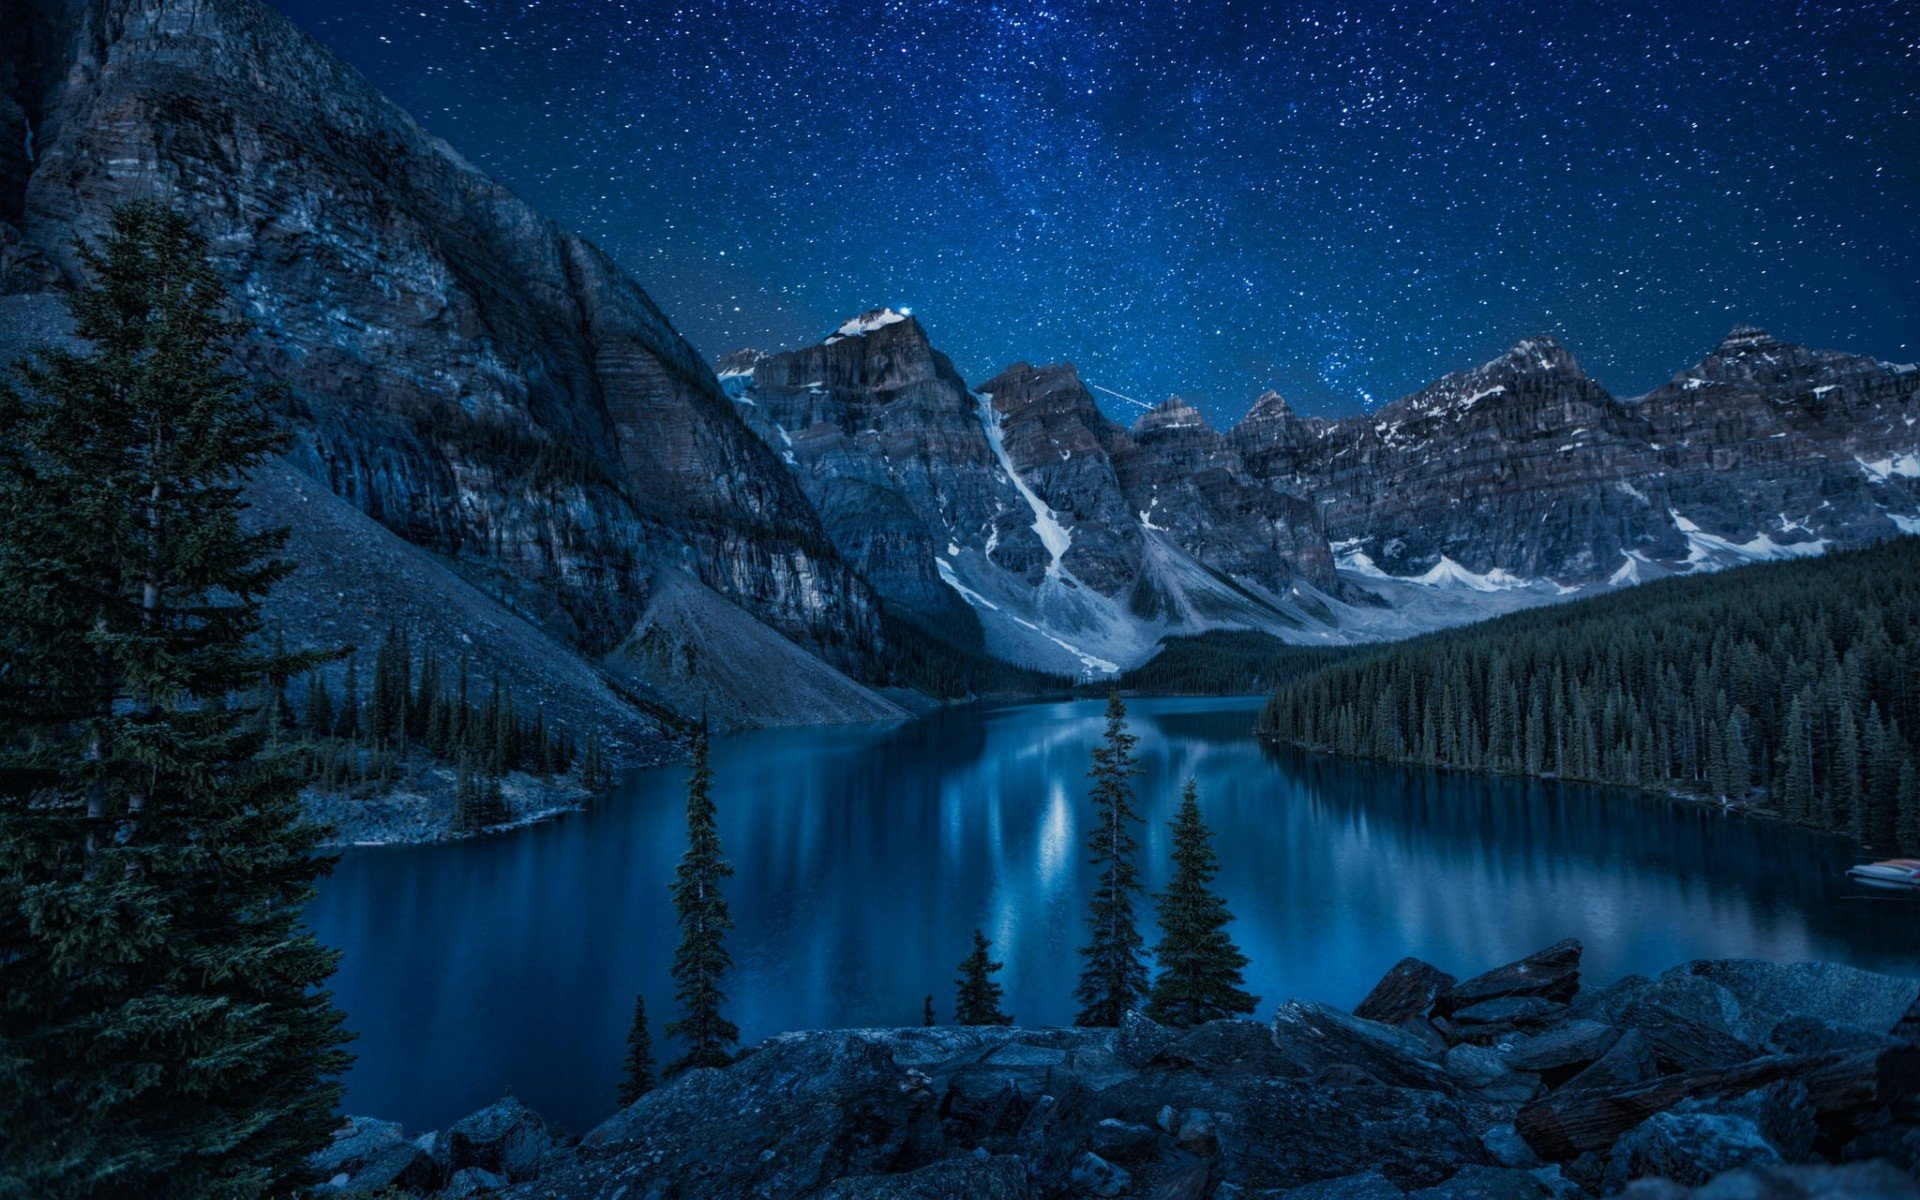 Wallpaper mountains forest lake night Banff National Park Moraine 1920x1200